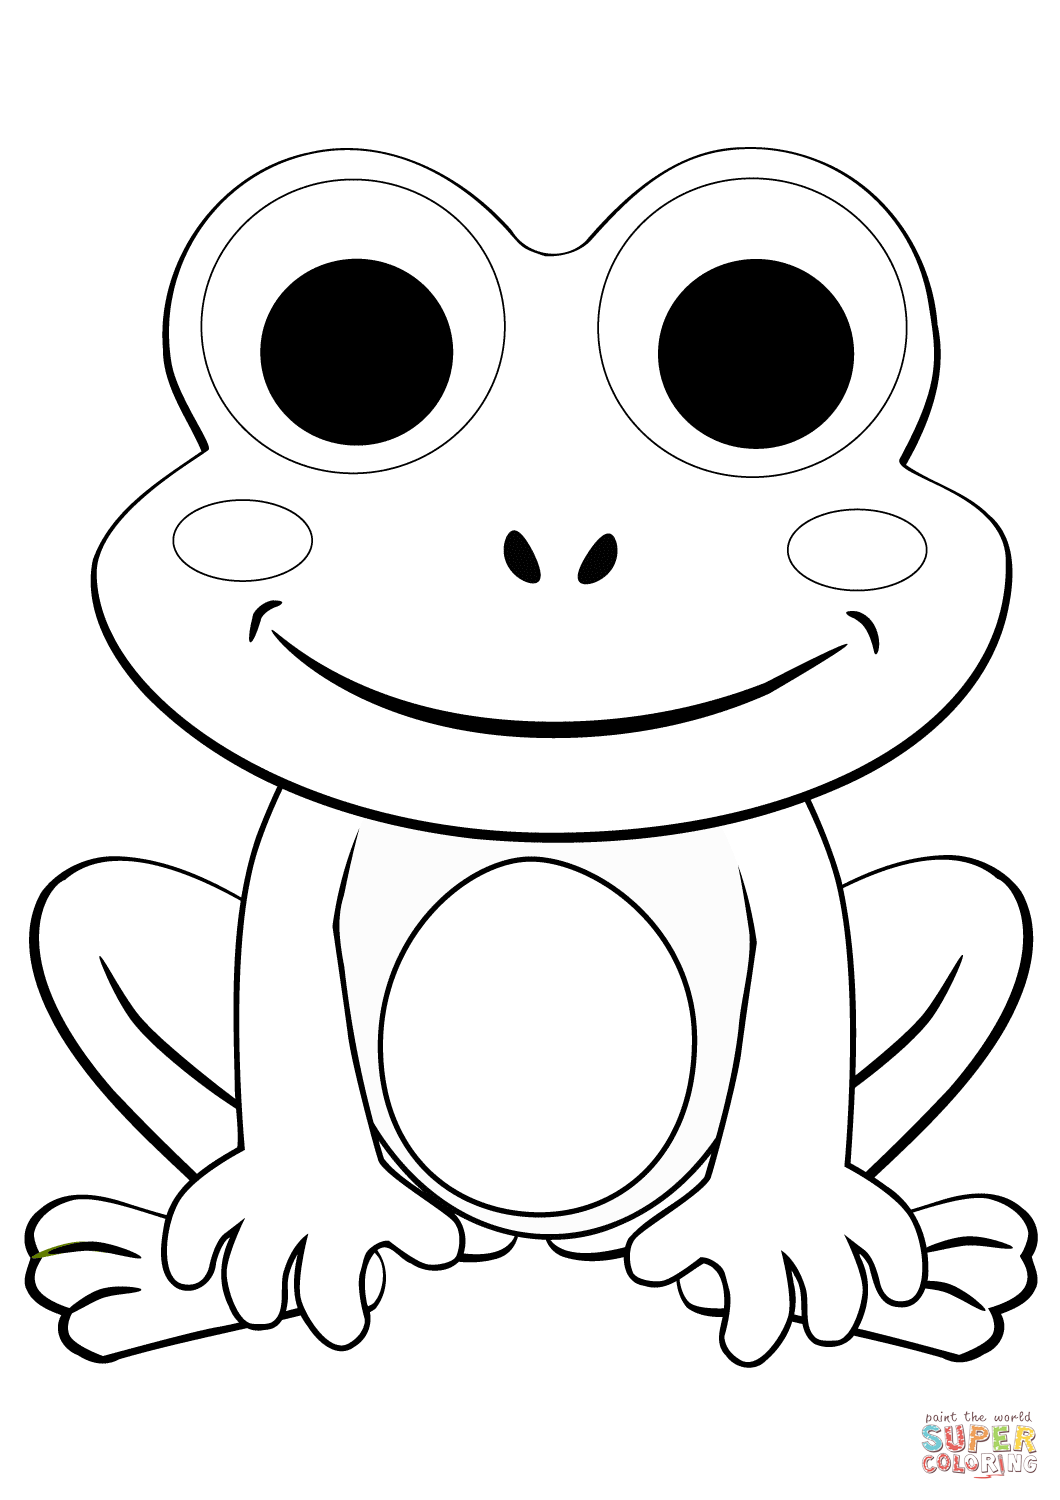 Cute Cartoon Frog coloring page | Free Printable Coloring ...